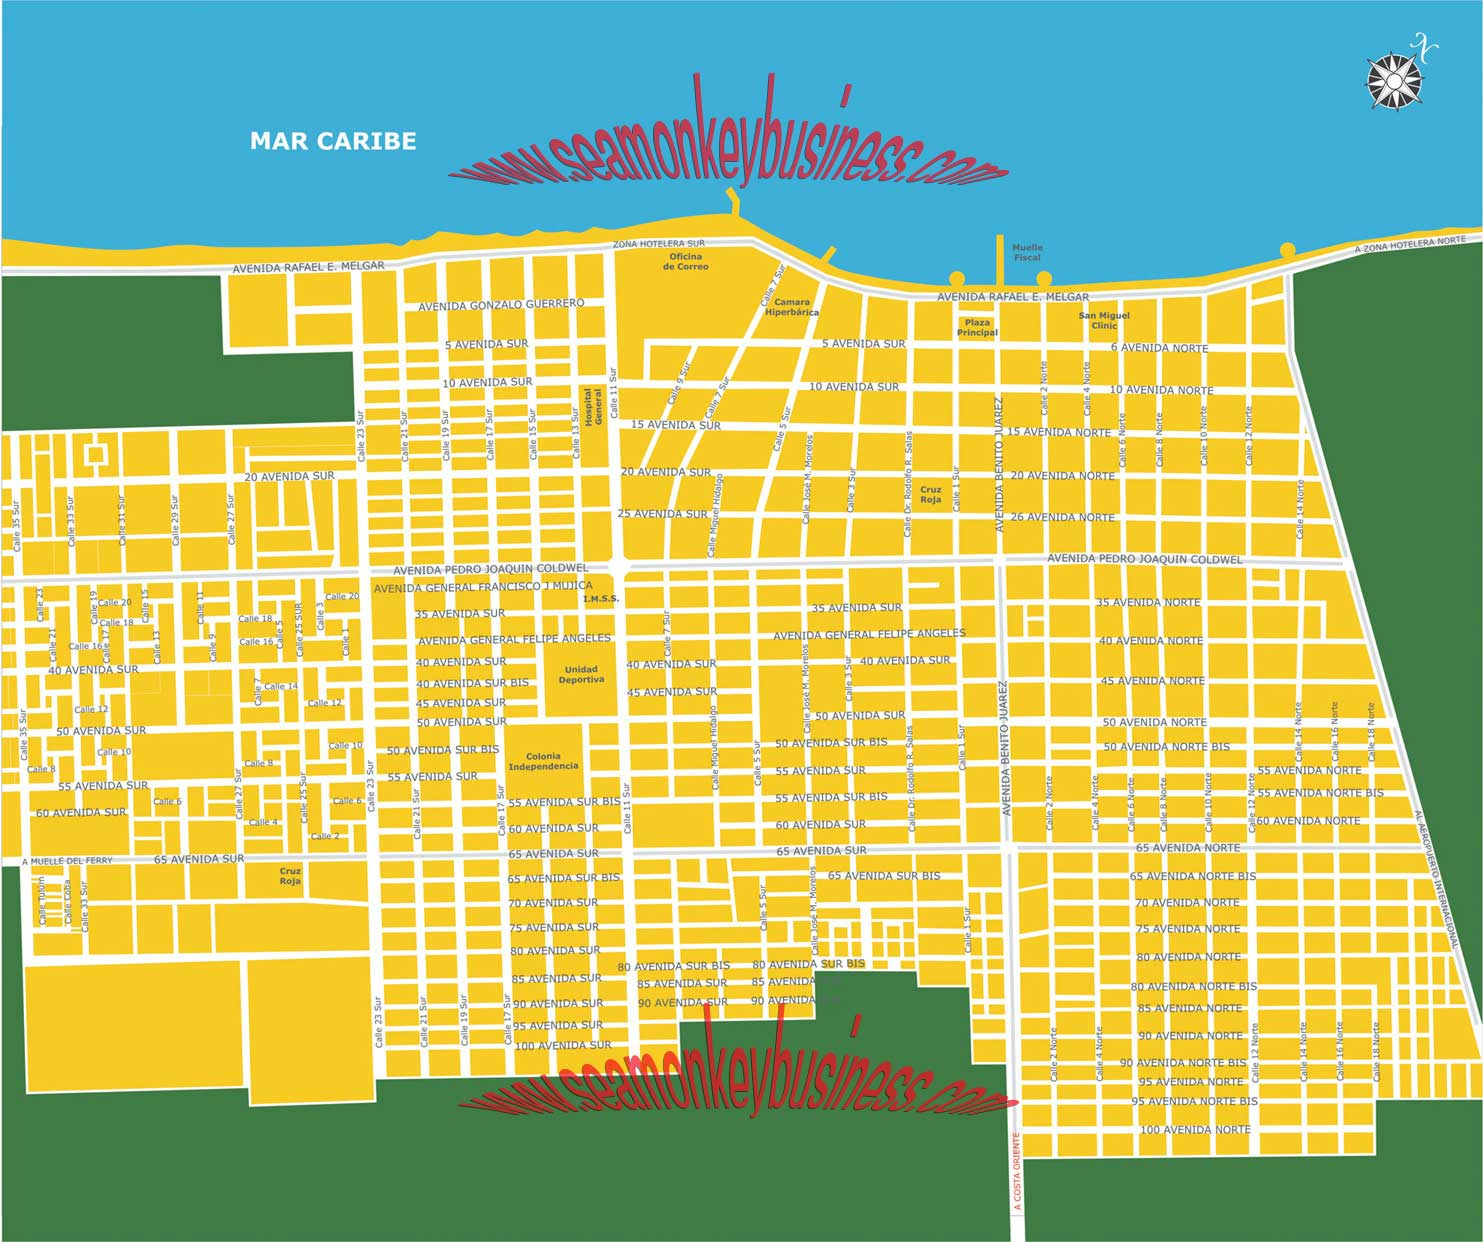 riviera maya maps with Maps Playa Del Carmen Riviera Maya on Maps playa del carmen riviera maya additionally Mexico beaches also Beja A Capital Do Baixo Alentejo furthermore Grand Sirenis Mayan Beach Hotel Spa Map together with Xenses Park.